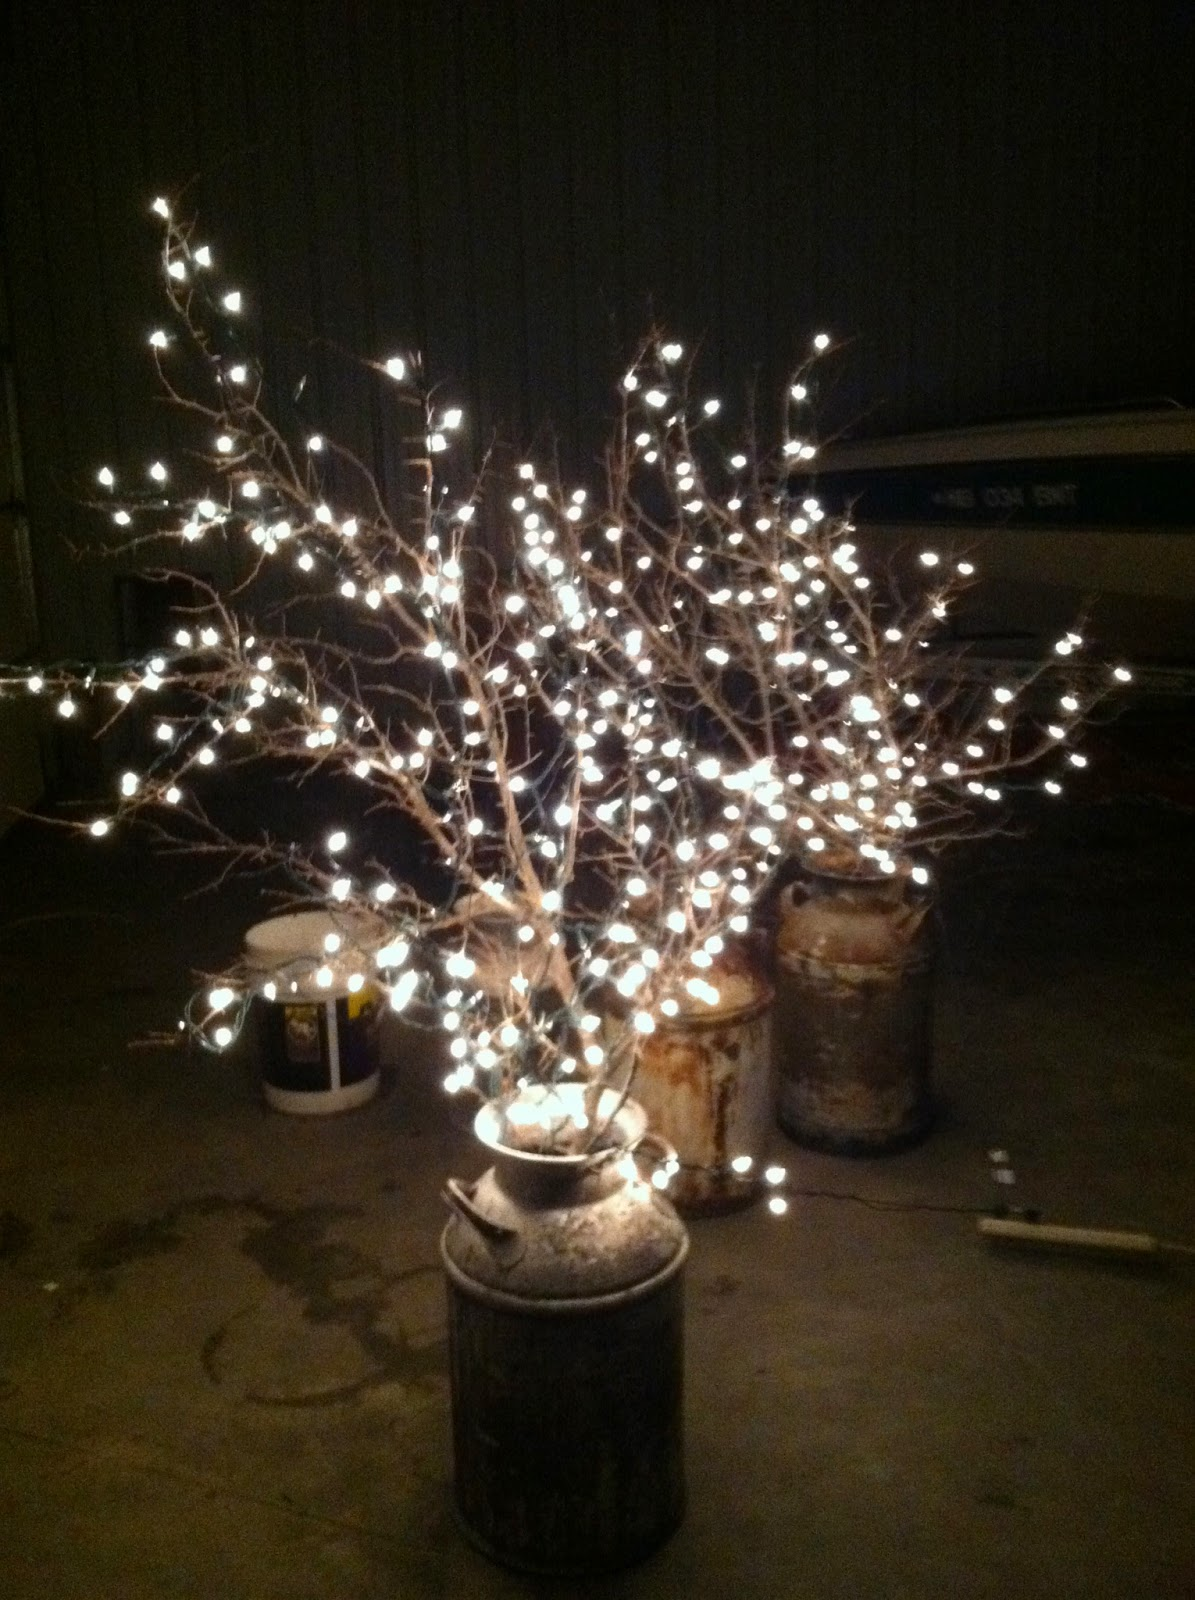 Proper Way To String Lights On A Christmas Tree : DIY Why Spend More: Milk cans + branches + white lights for wedding reception lighting